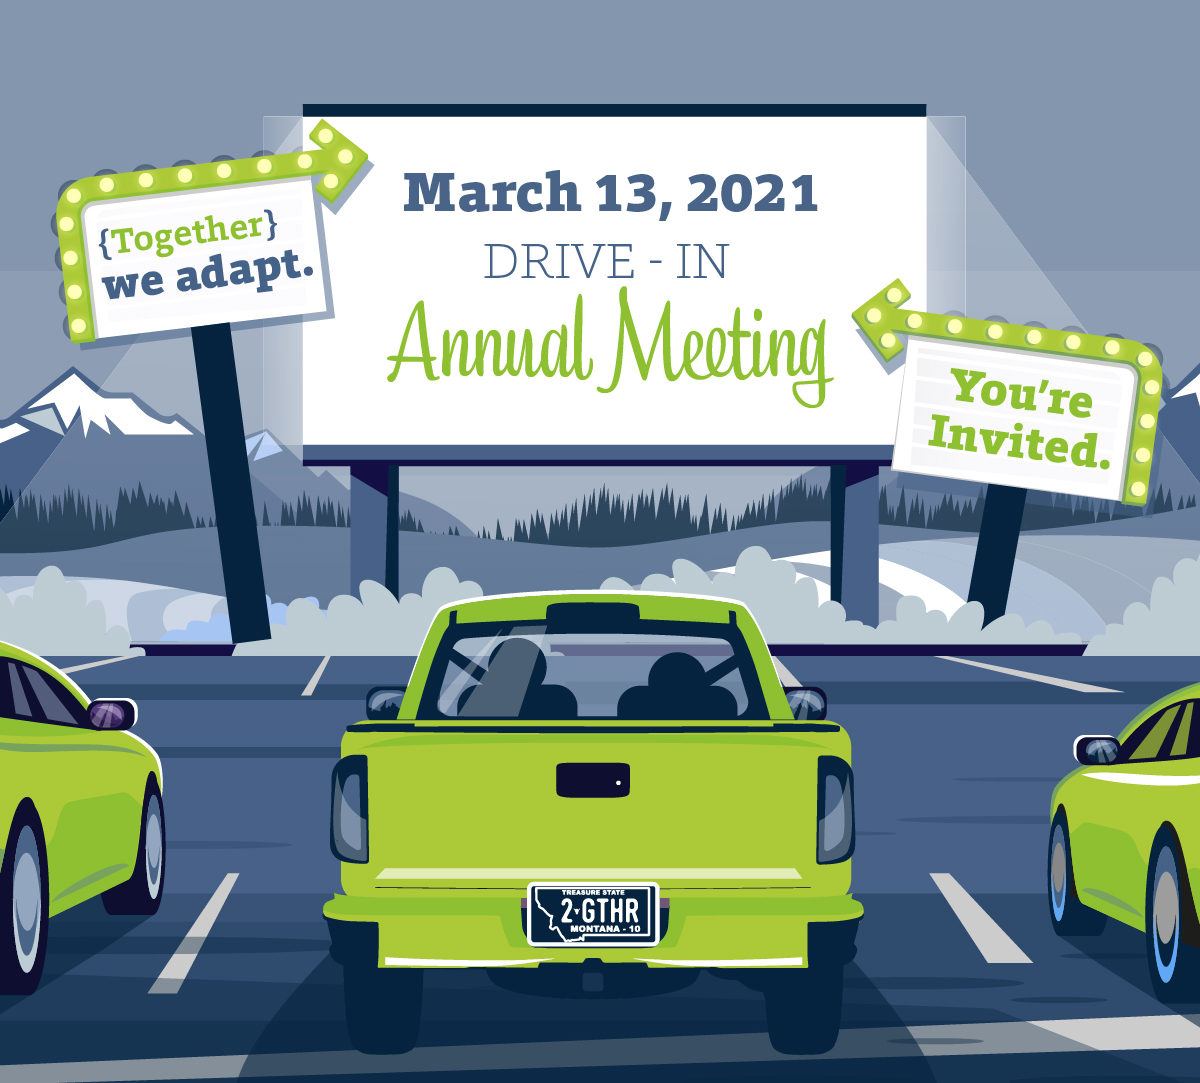 2021 Drive In Annual Meeting